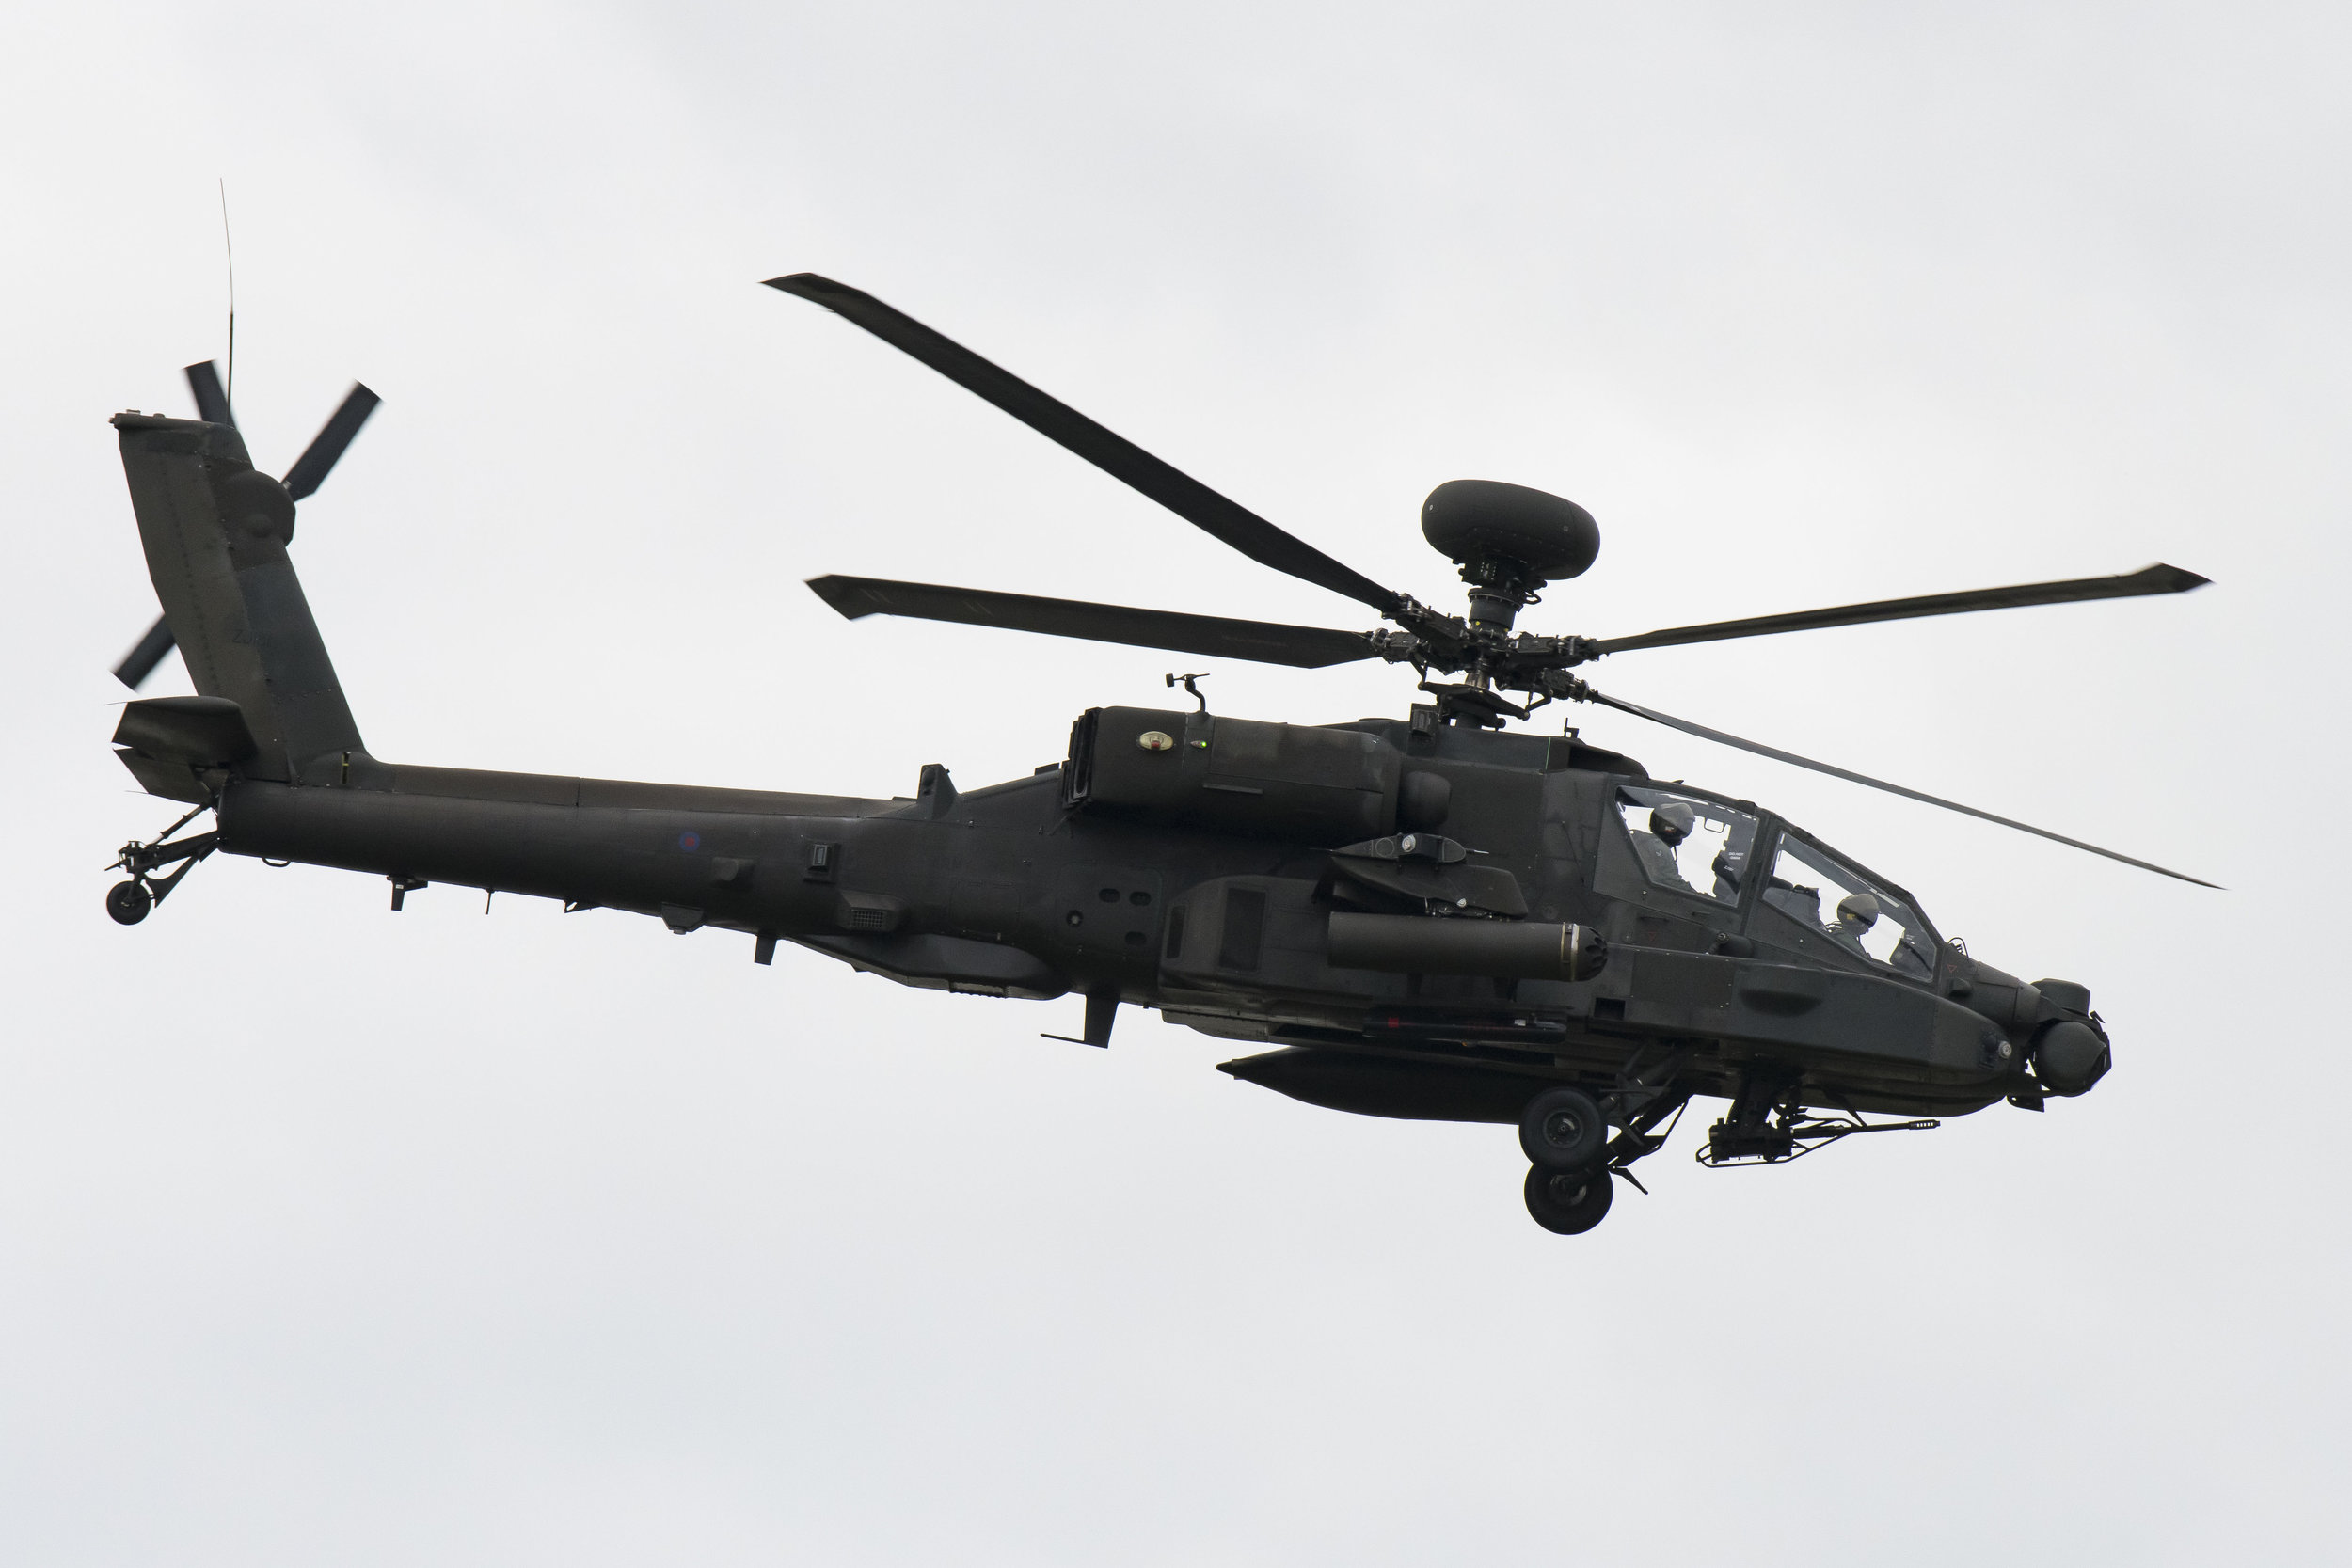 FAIRFORD, ENGLAND - JULY 21: An  AAC Apache AH1 performs during the the International Air Tattoo at RAF Fairford on July 21, 2019 in Fairford, England. The Royal International Air Tattoo (RIAT) is the world's largest military air show, held in support of The Royal Air Force Charitable Trust. (Photo by Matthew Horwood/Getty Images)